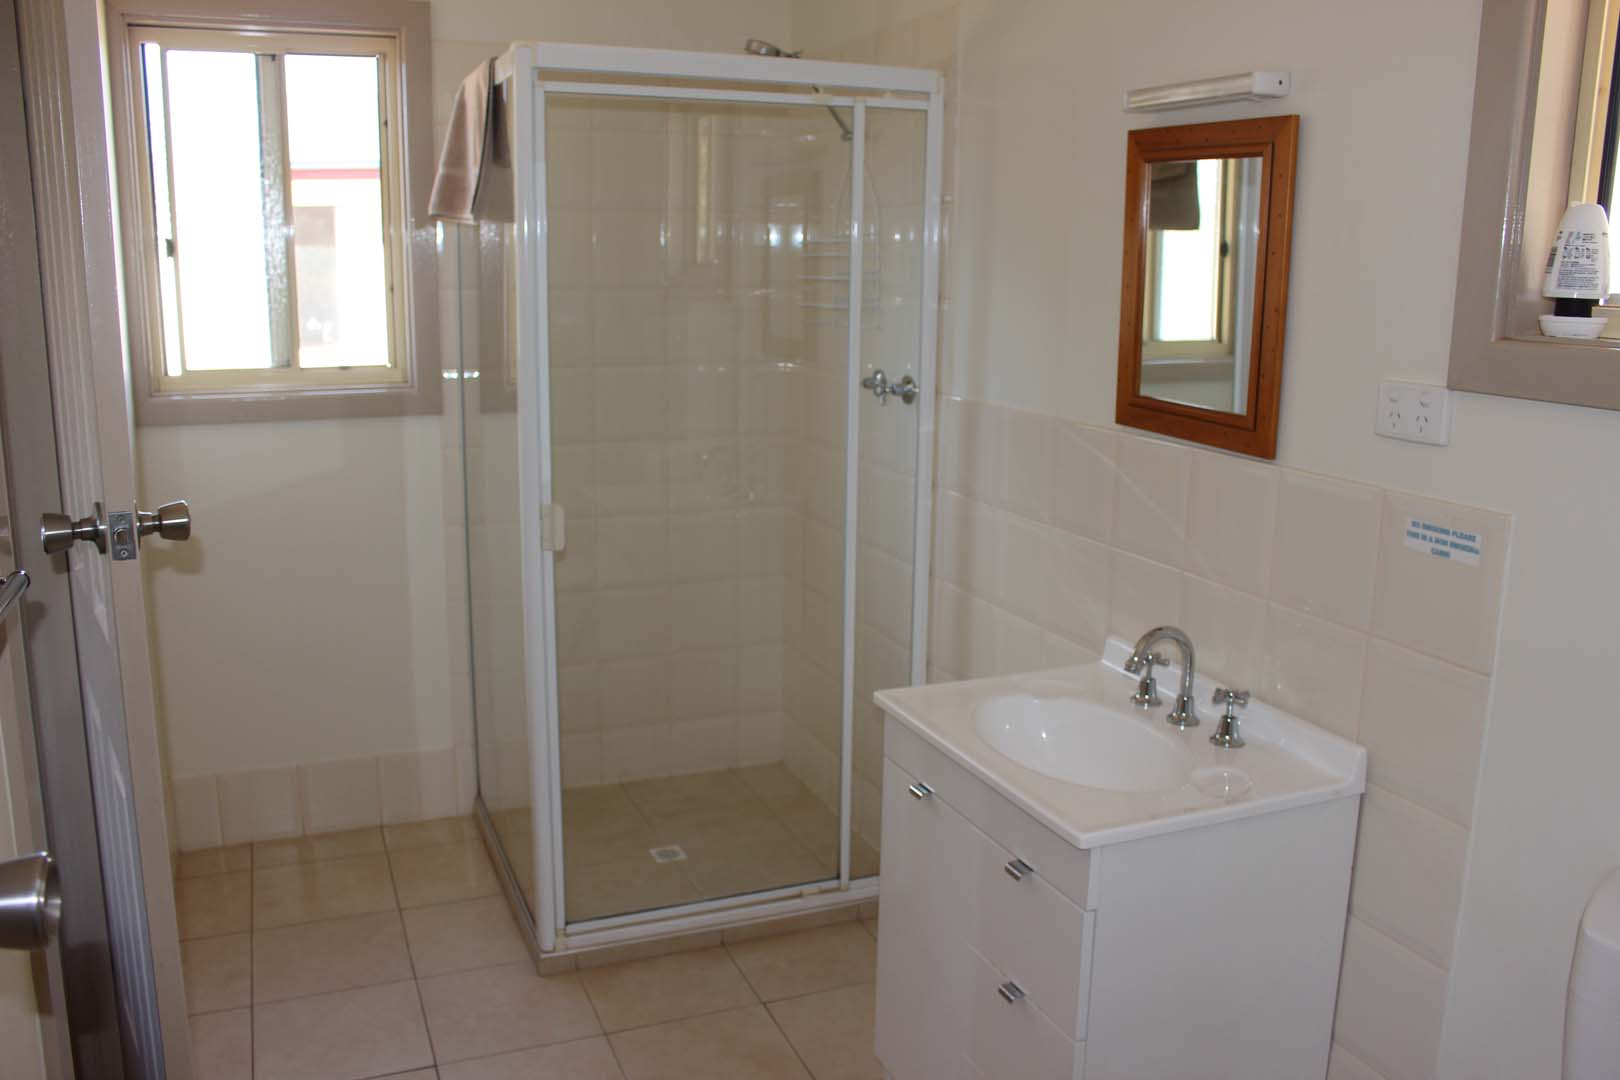 fuller-views-cabin-park-bathroom-shower-vanity-mirroe